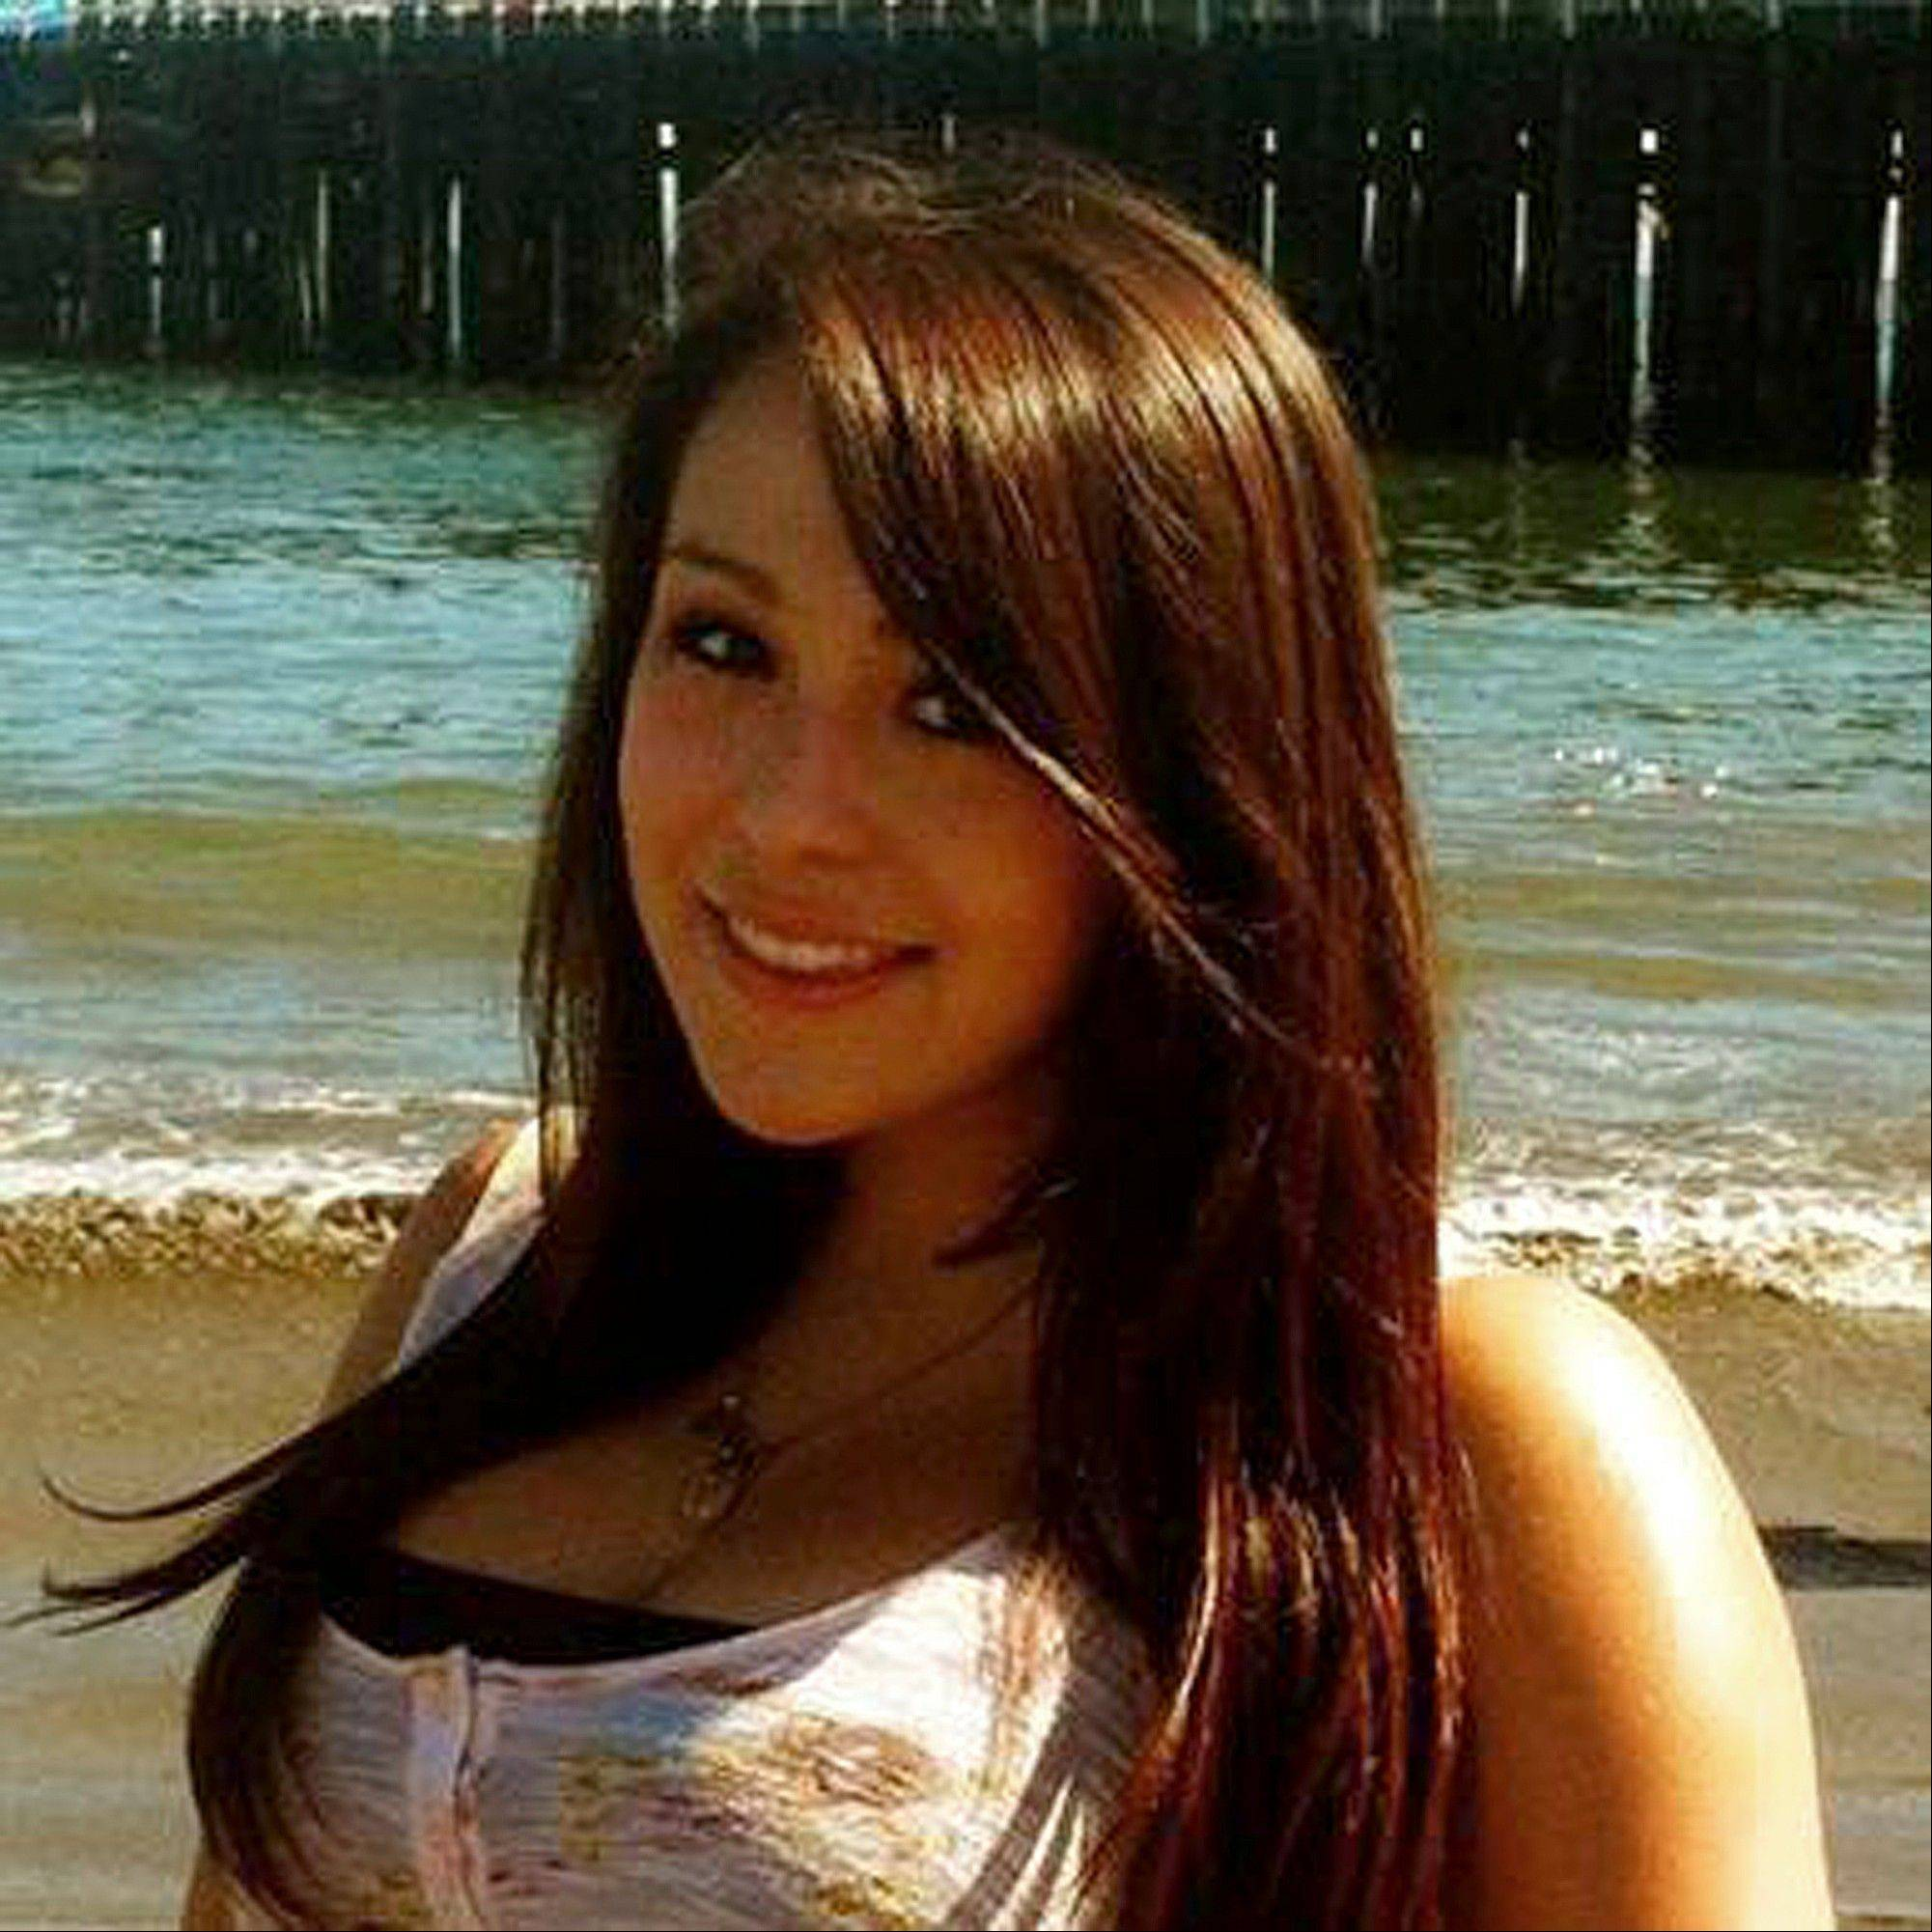 A Northern California sheriff�s office has arrested three 16-year-old boys on accusations that they sexually battered 15-year-old Audrie Pott, who hanged herself eight days after the attack last fall. Santa Clara County Sheriff�s spokesman Lt. Jose Cardoza says the teens were arrested Thursday.